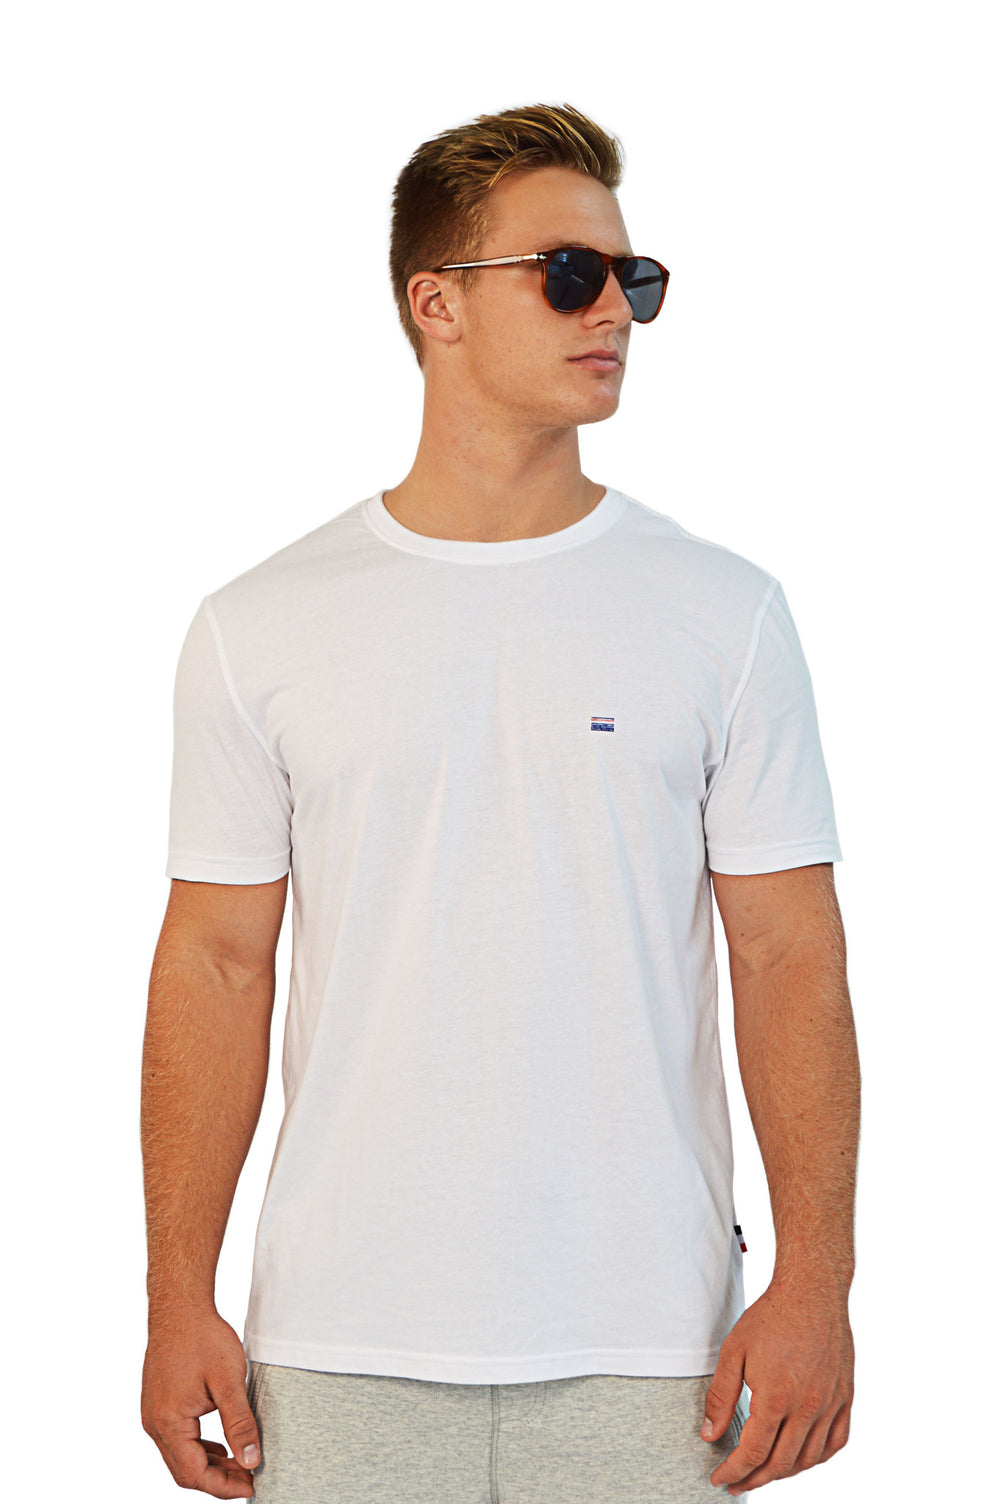 front view white t-shirt